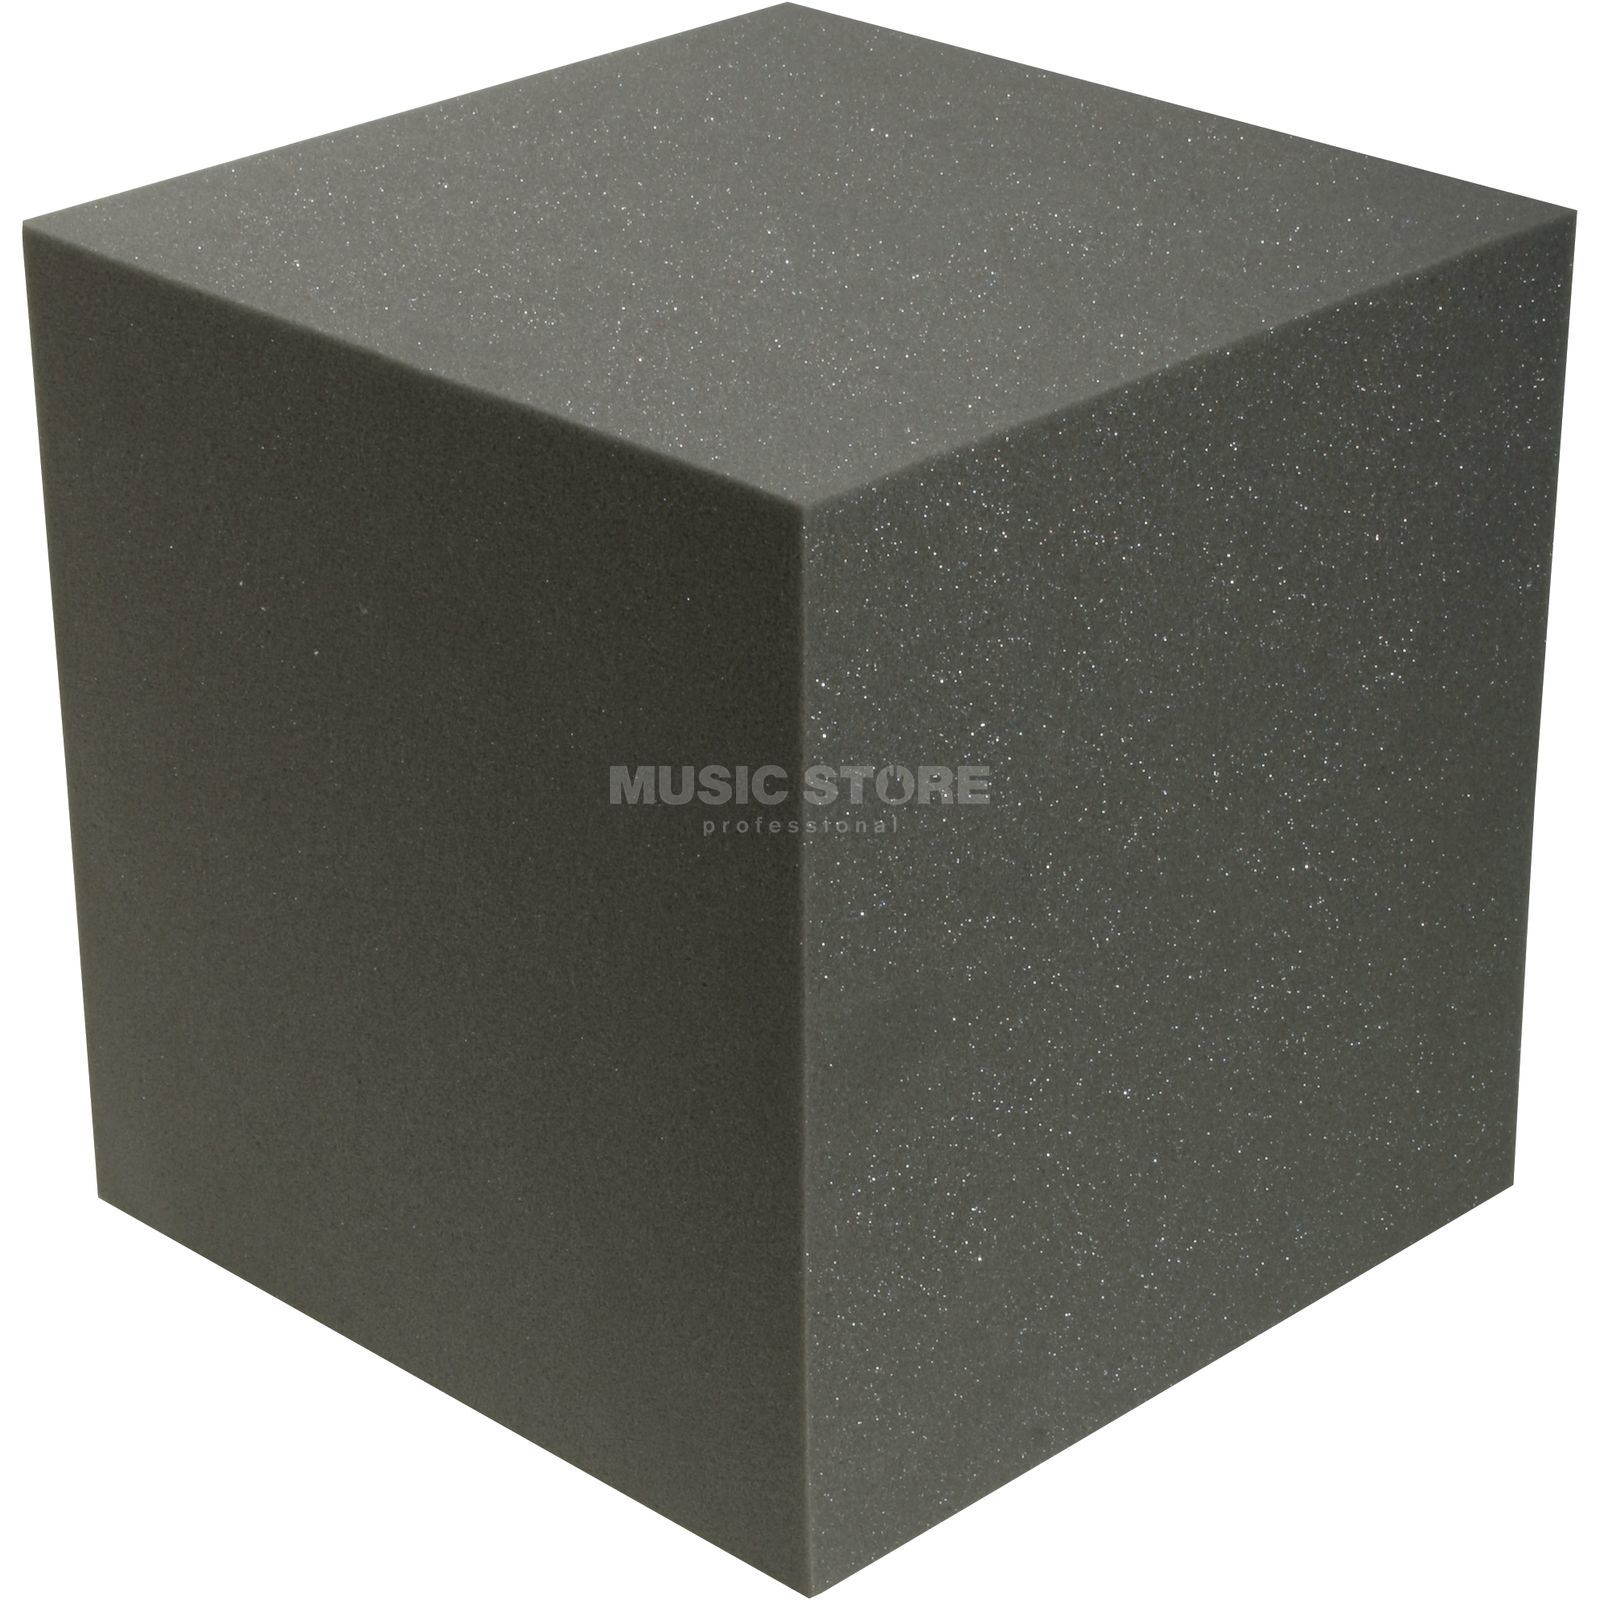 MUSIC STORE Absorber-Set Qube, anthracite 300x300x300 Produktbillede